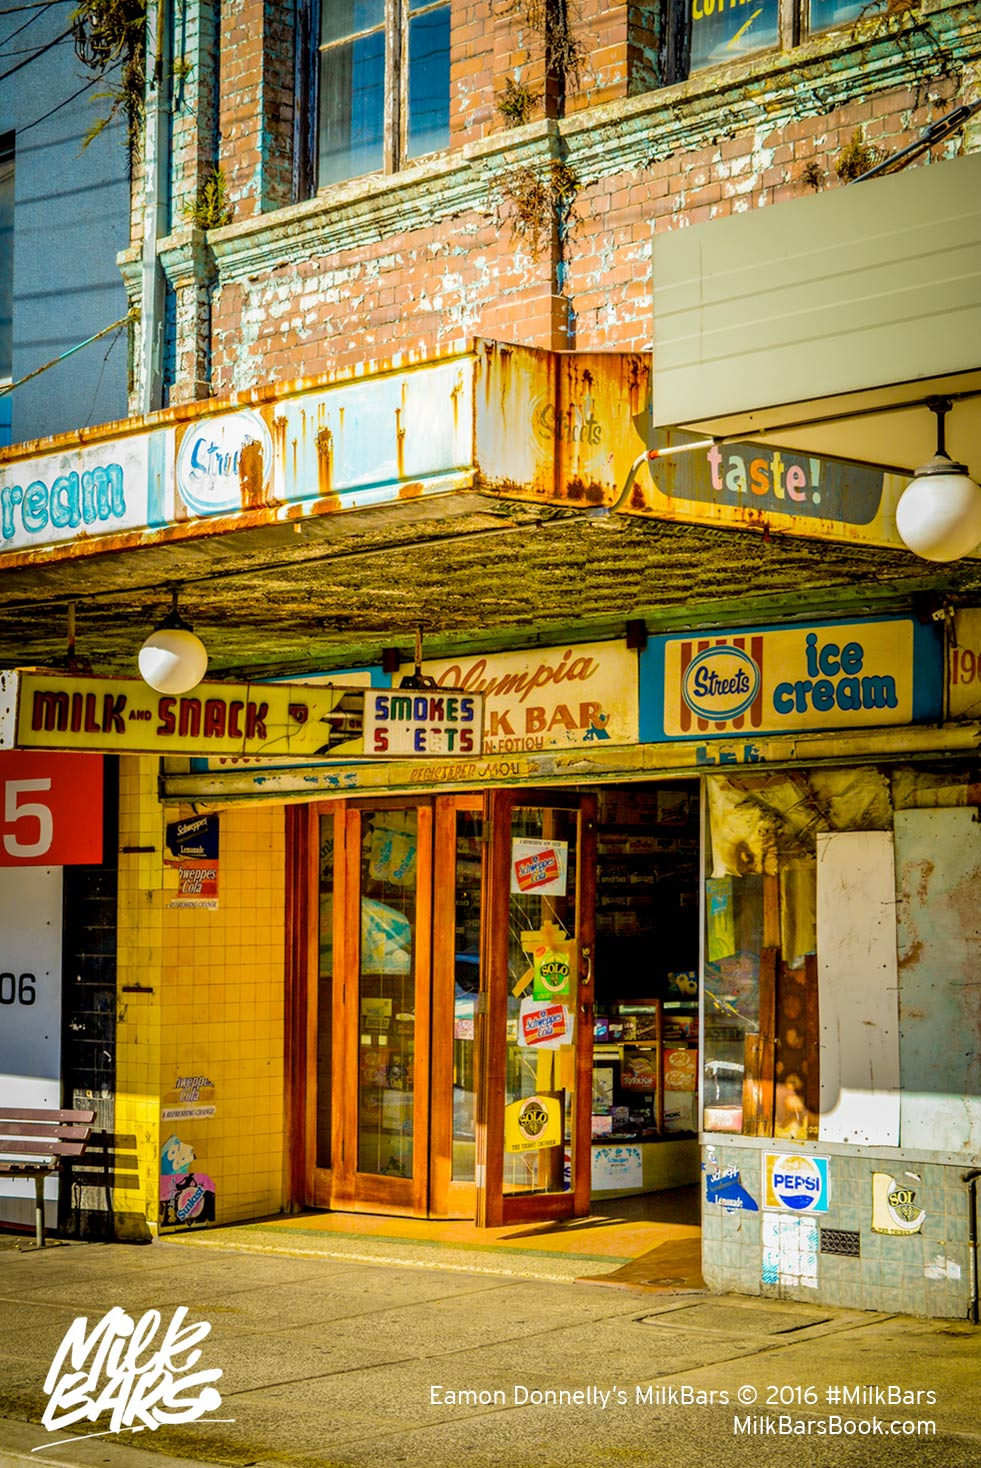 Olympia-Milk-Bar-6-Sydney-Stanmore-Parramatta-Road-Eamon-Donnelly's-Milk-Bars-Book-Project-(c)-2001-2016.jpg